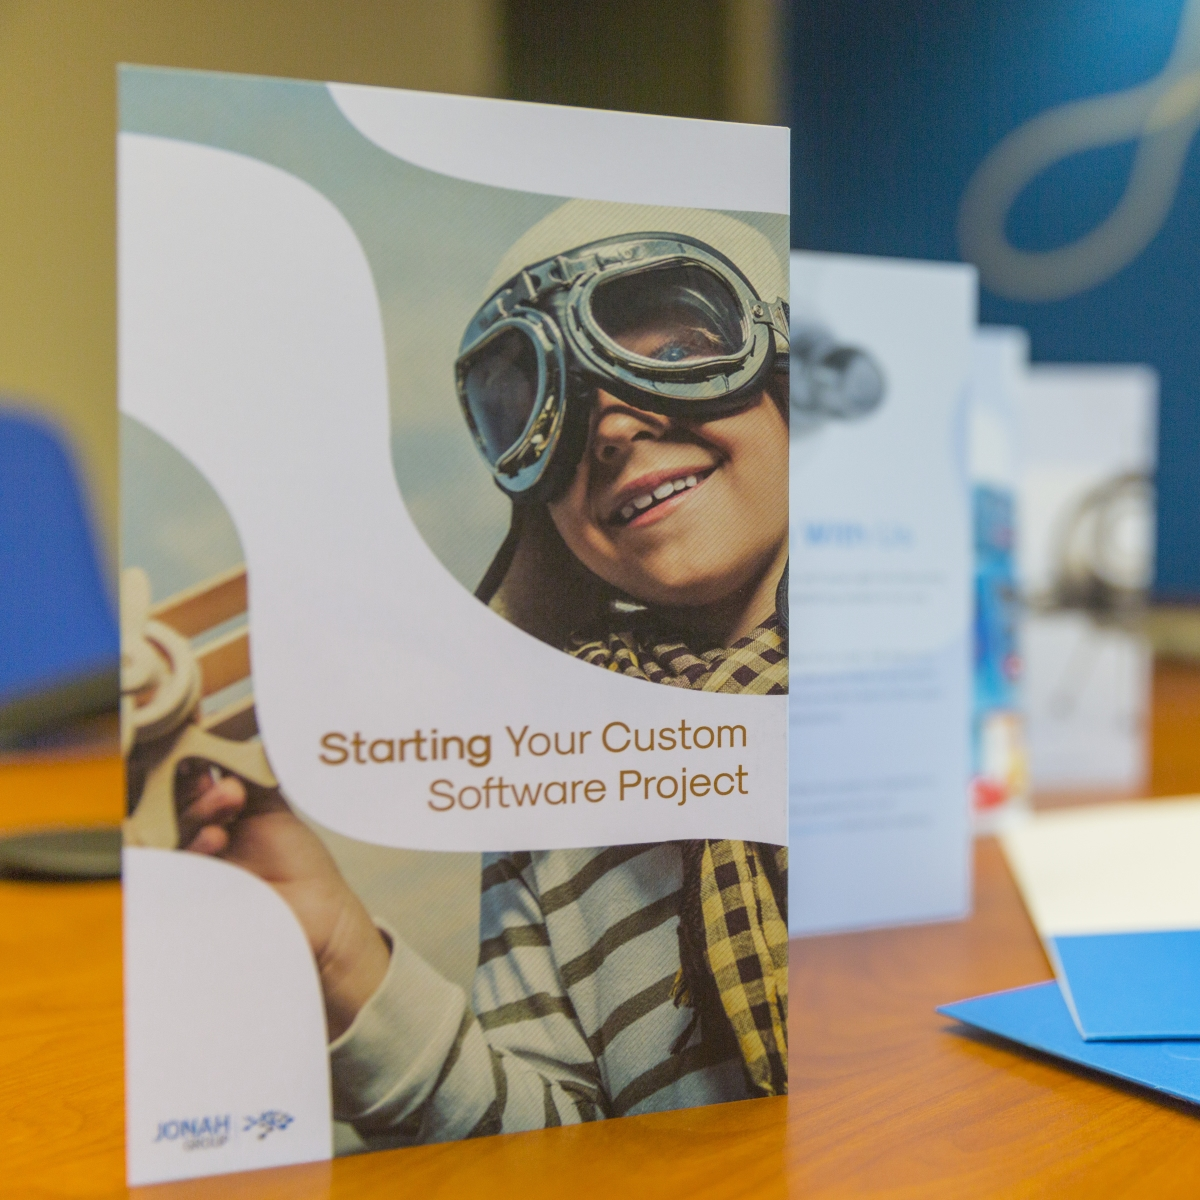 Getting Started Guide pamphlet on boardroom table